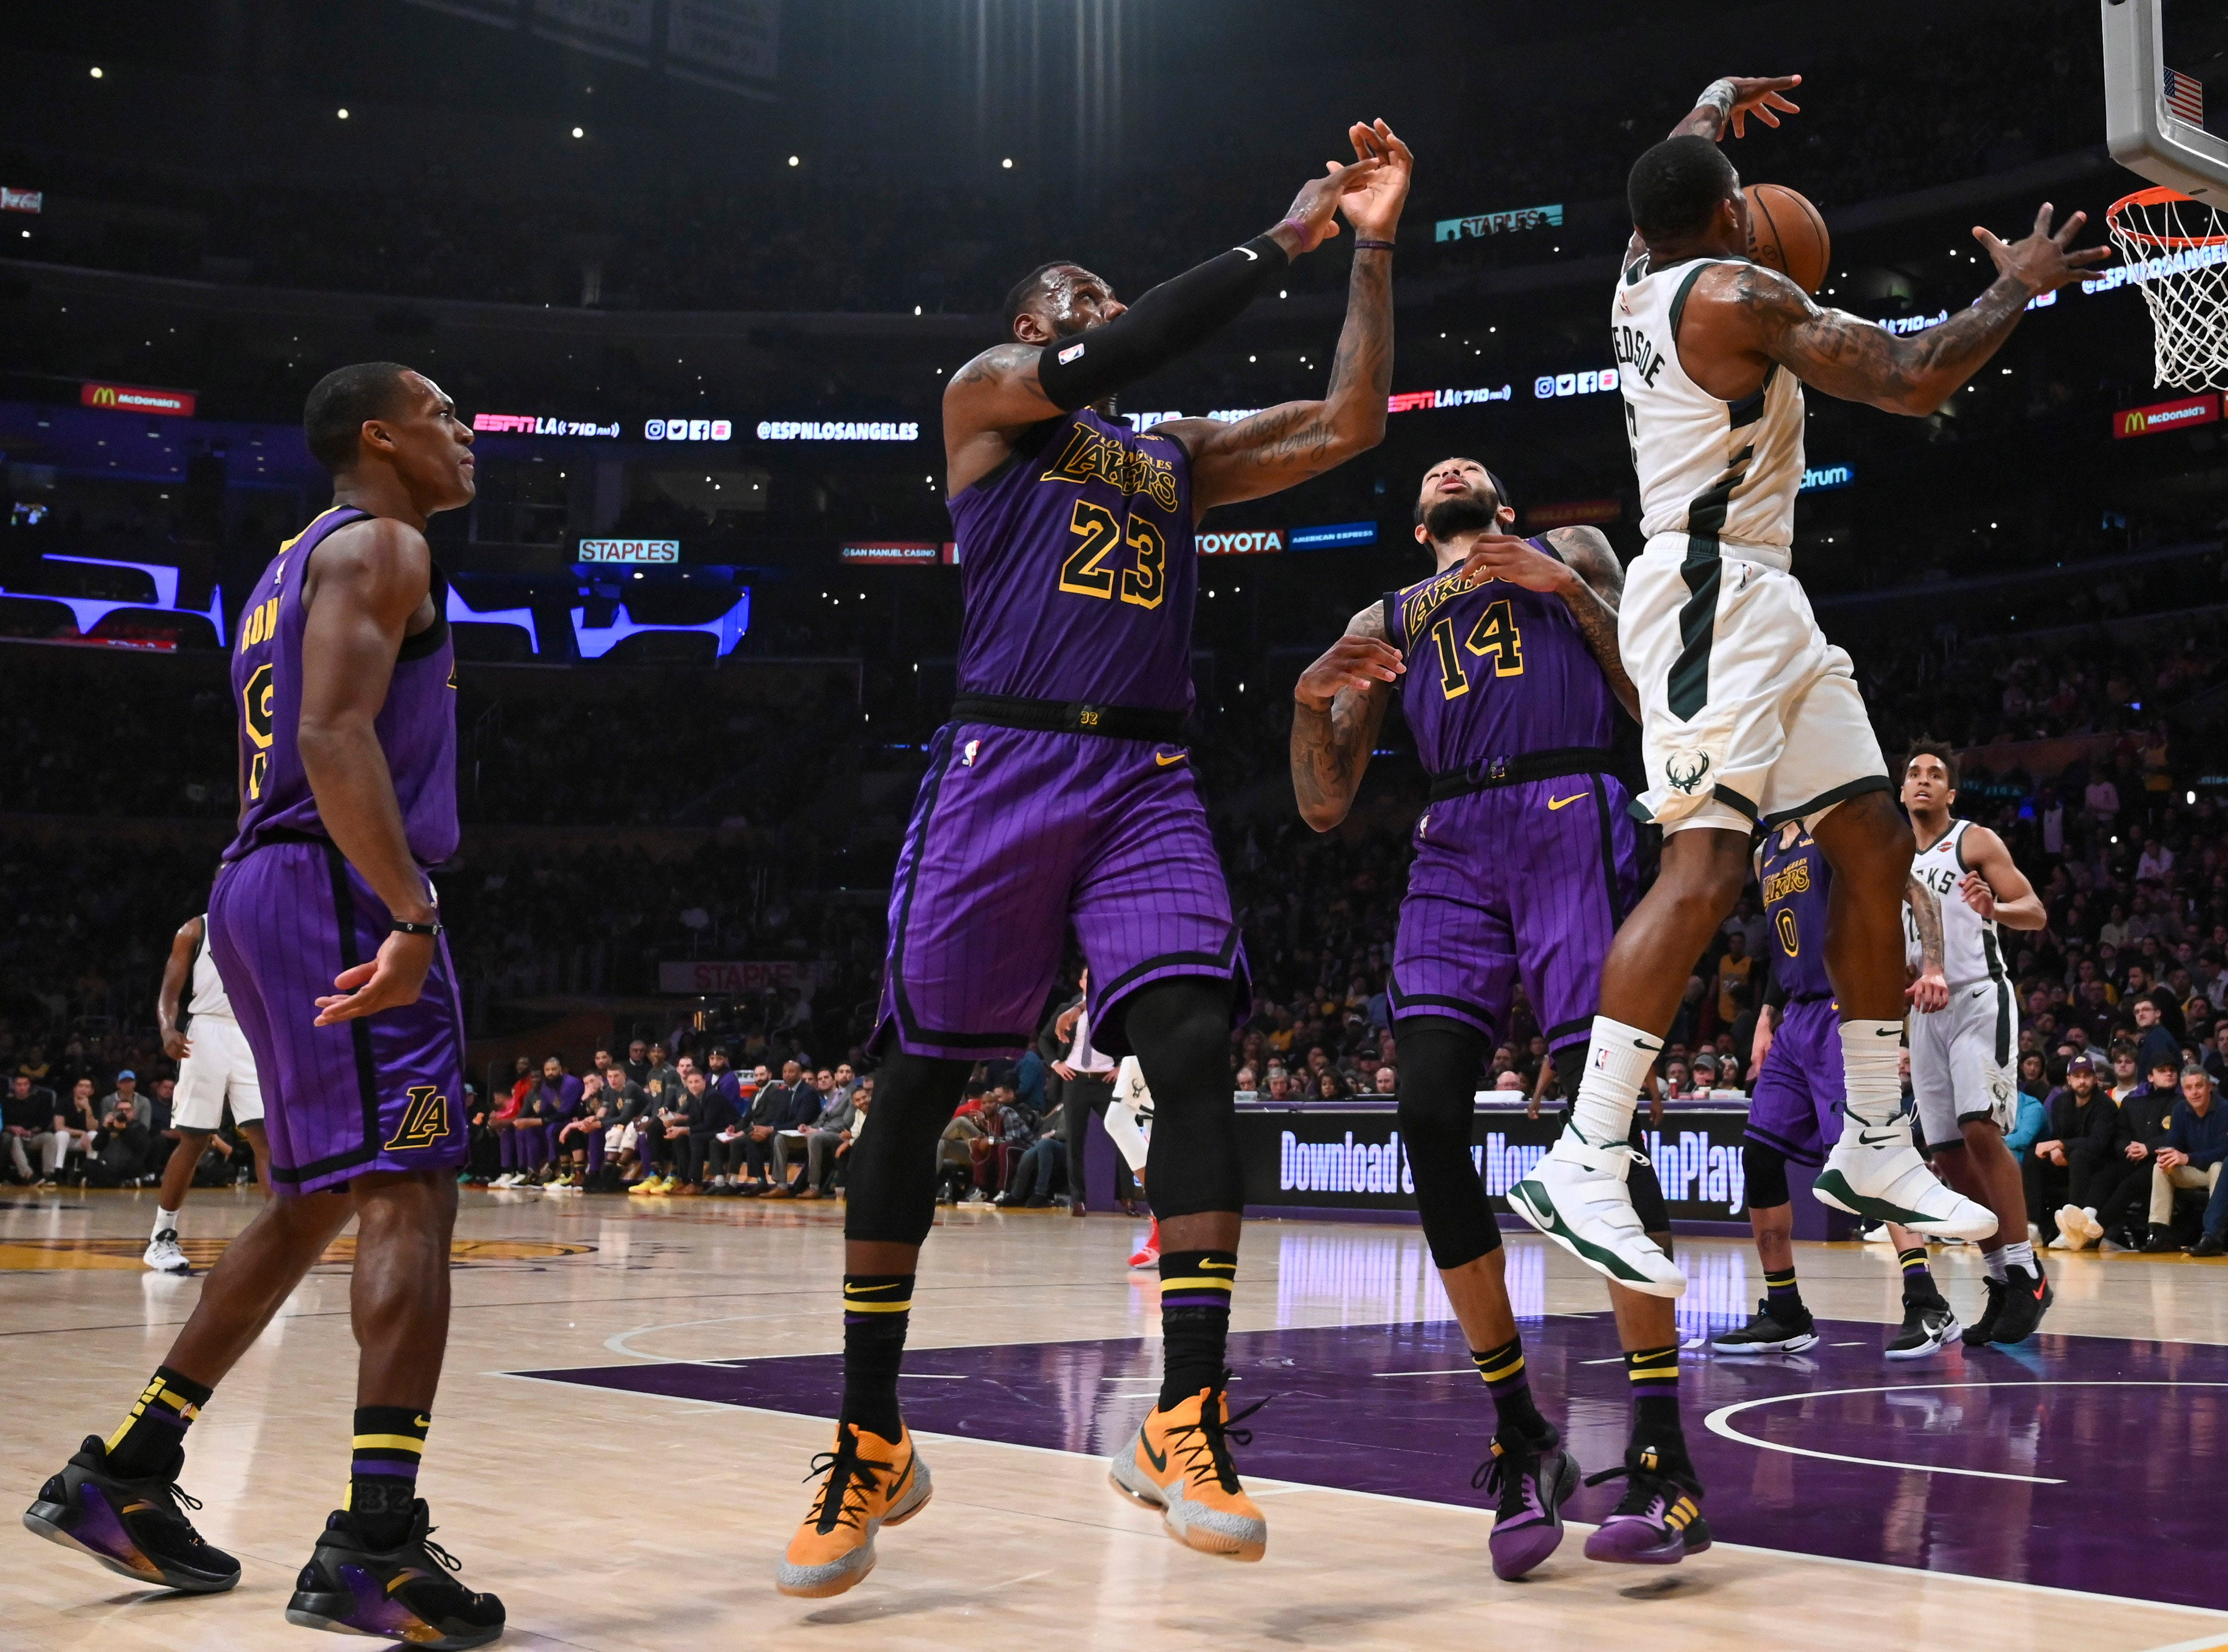 Bucks guard Eric Bledsoe gets behind a trio of Lakers, including LeBron James (23) and Brandon Ingram (14), for a key rebound during the second half.